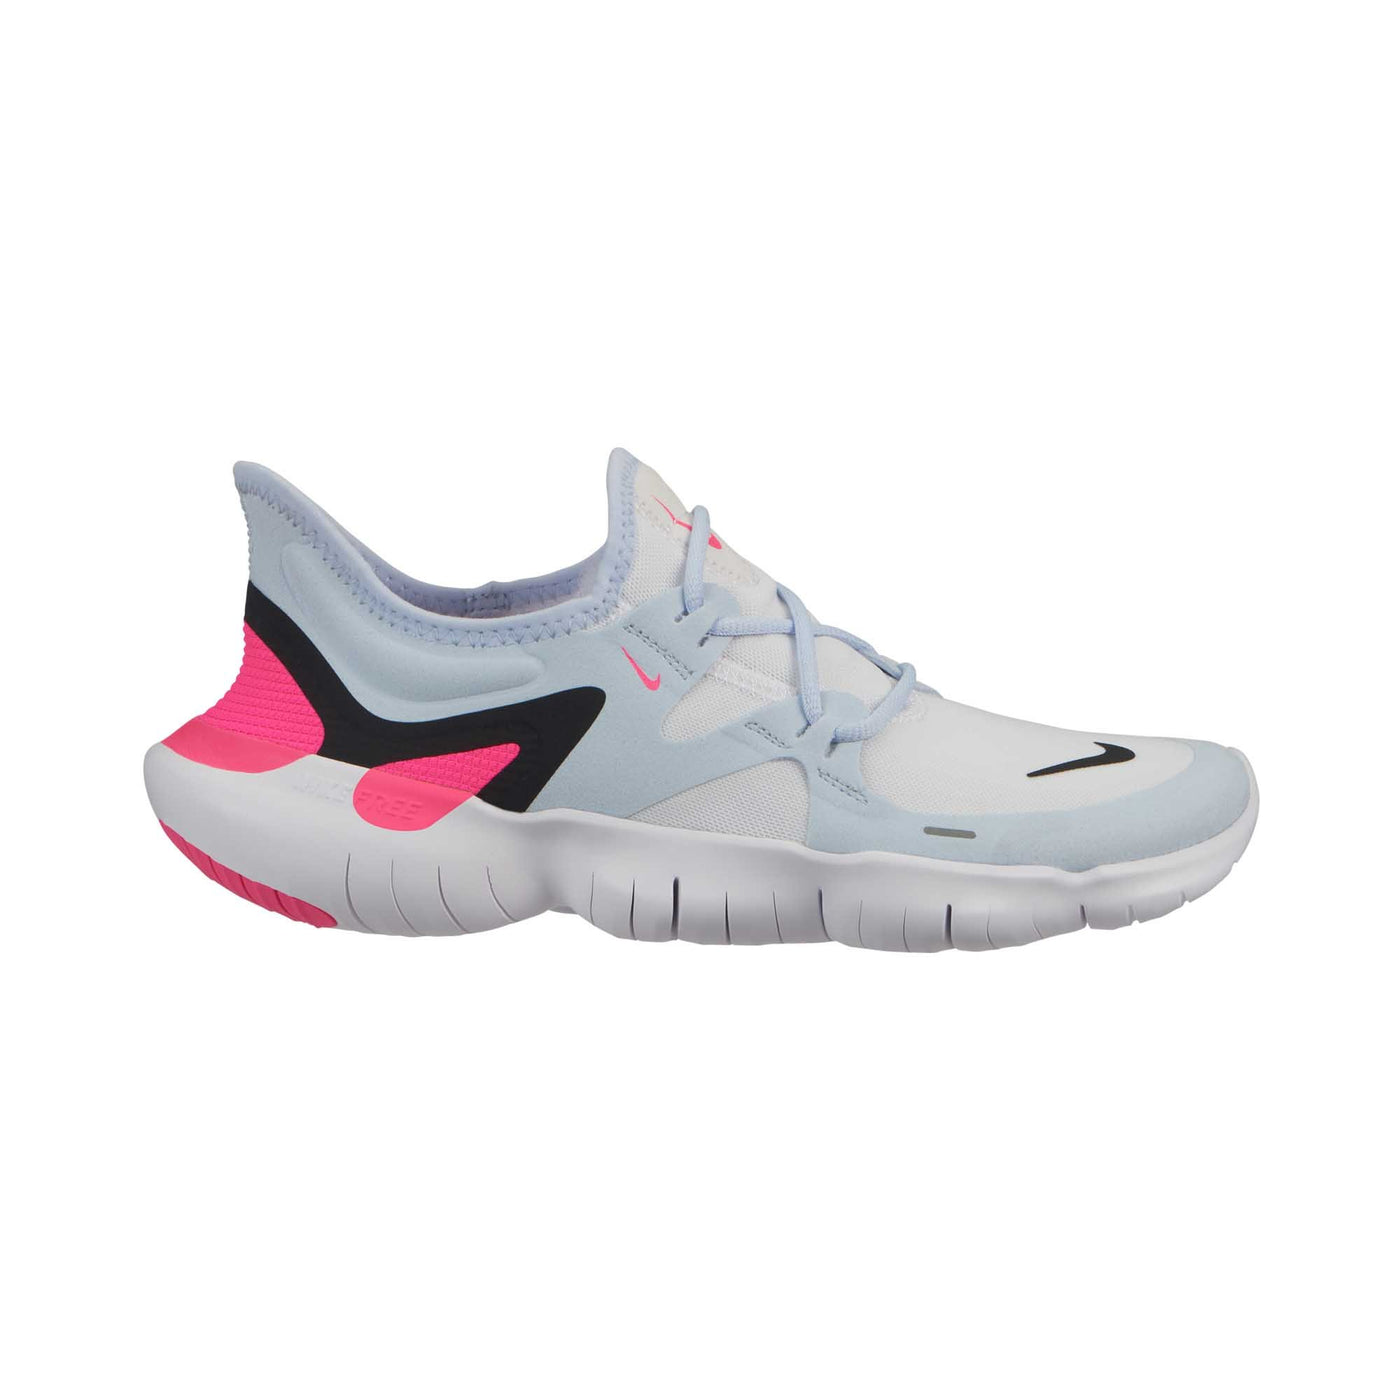 3d38b28350607 Women Free Run 5.0 Running Shoes